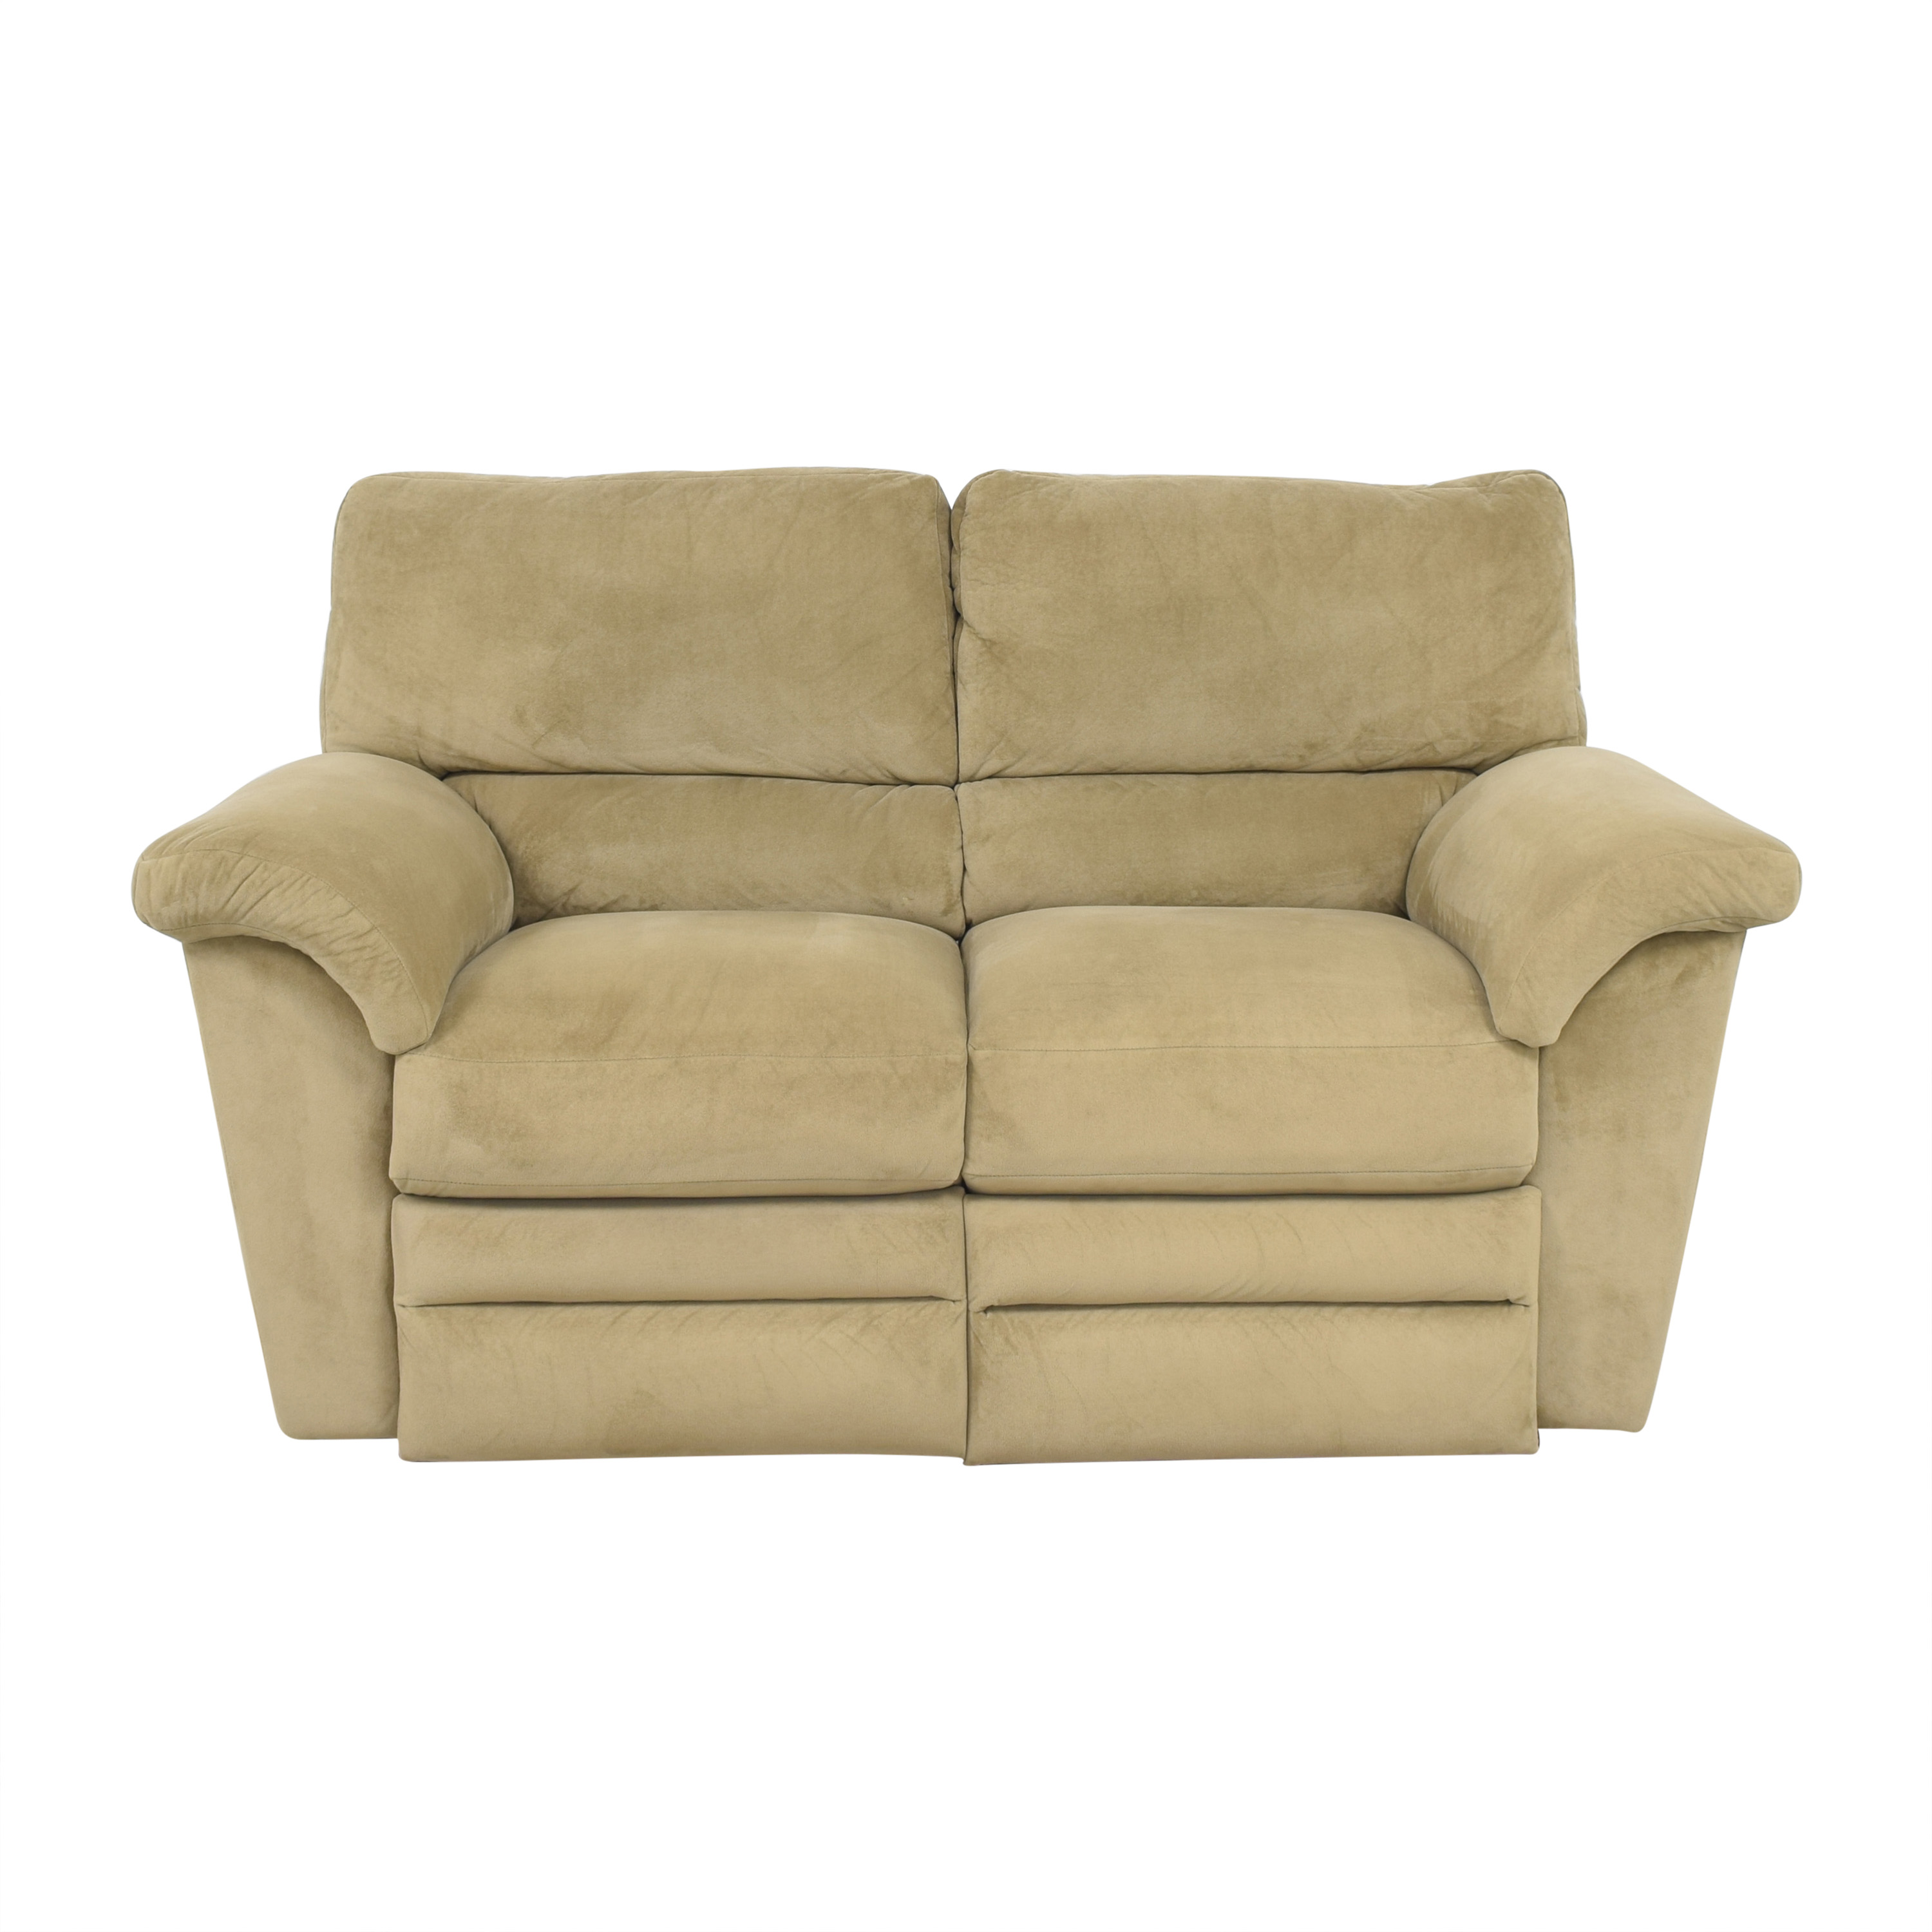 La-Z-Boy La-Z-Boy Reclining Loveseat dimensions